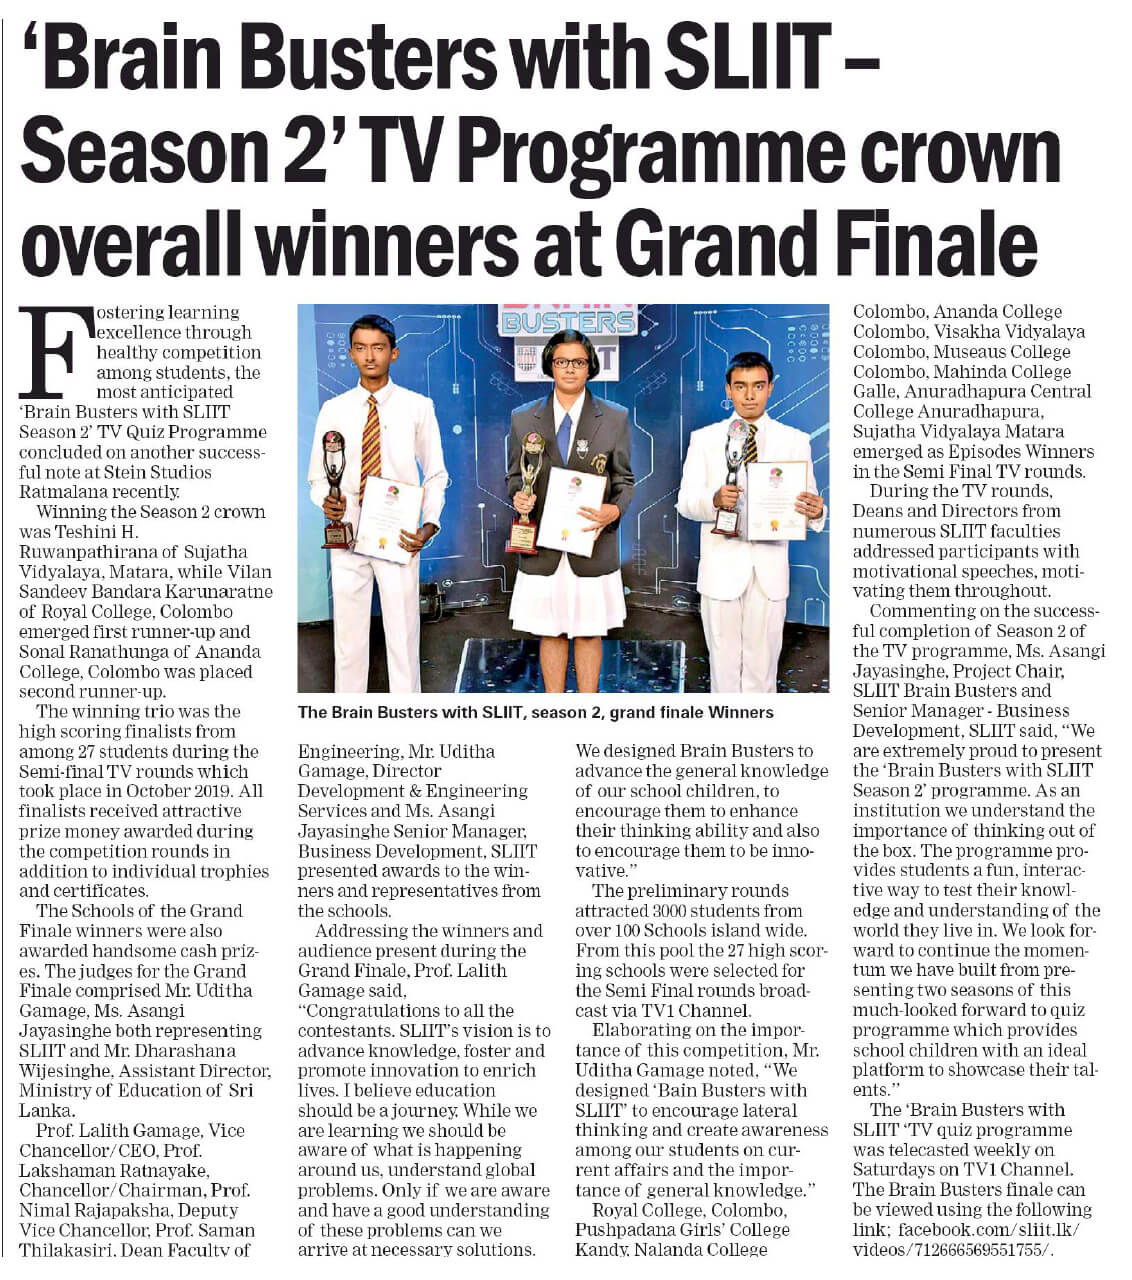 Brain-Busters-with-SLIIT-Season-2-Ends-in-High-Note-Sunday-Times-31.05.2020